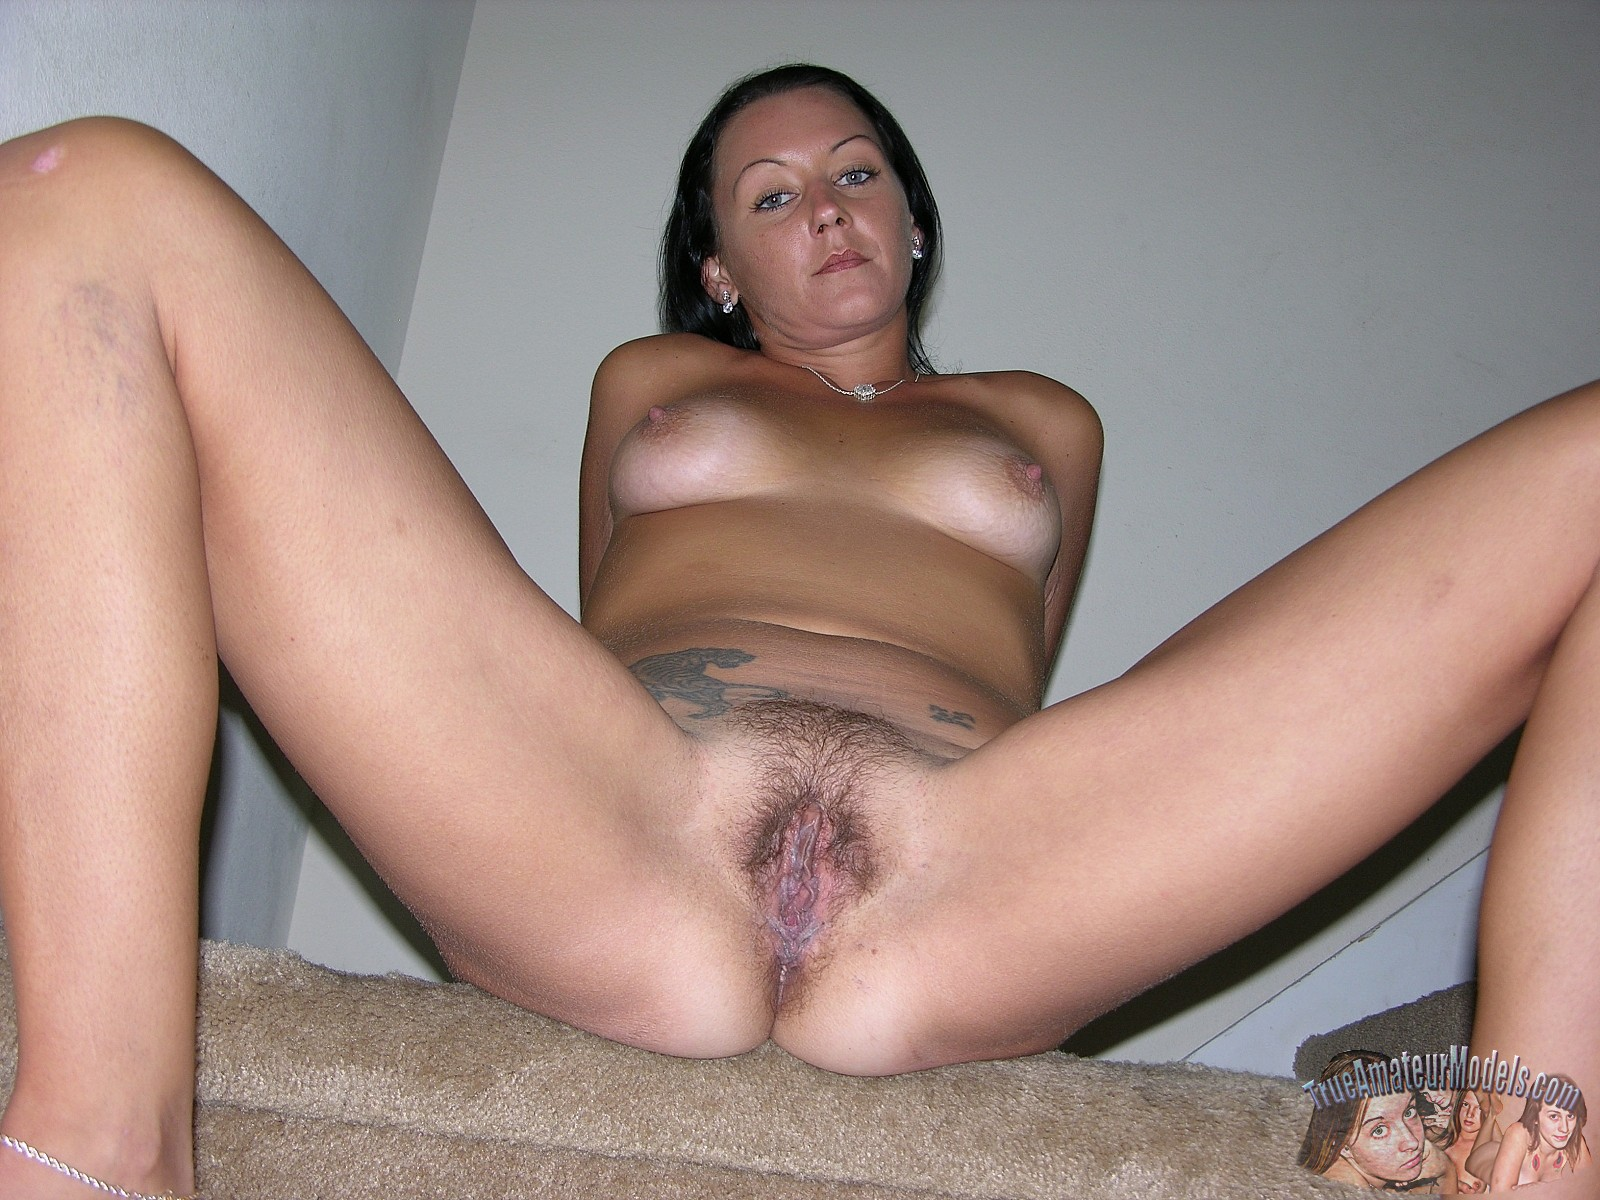 All Types Of 100 Real And Exclusive Amateur Girls That I Have